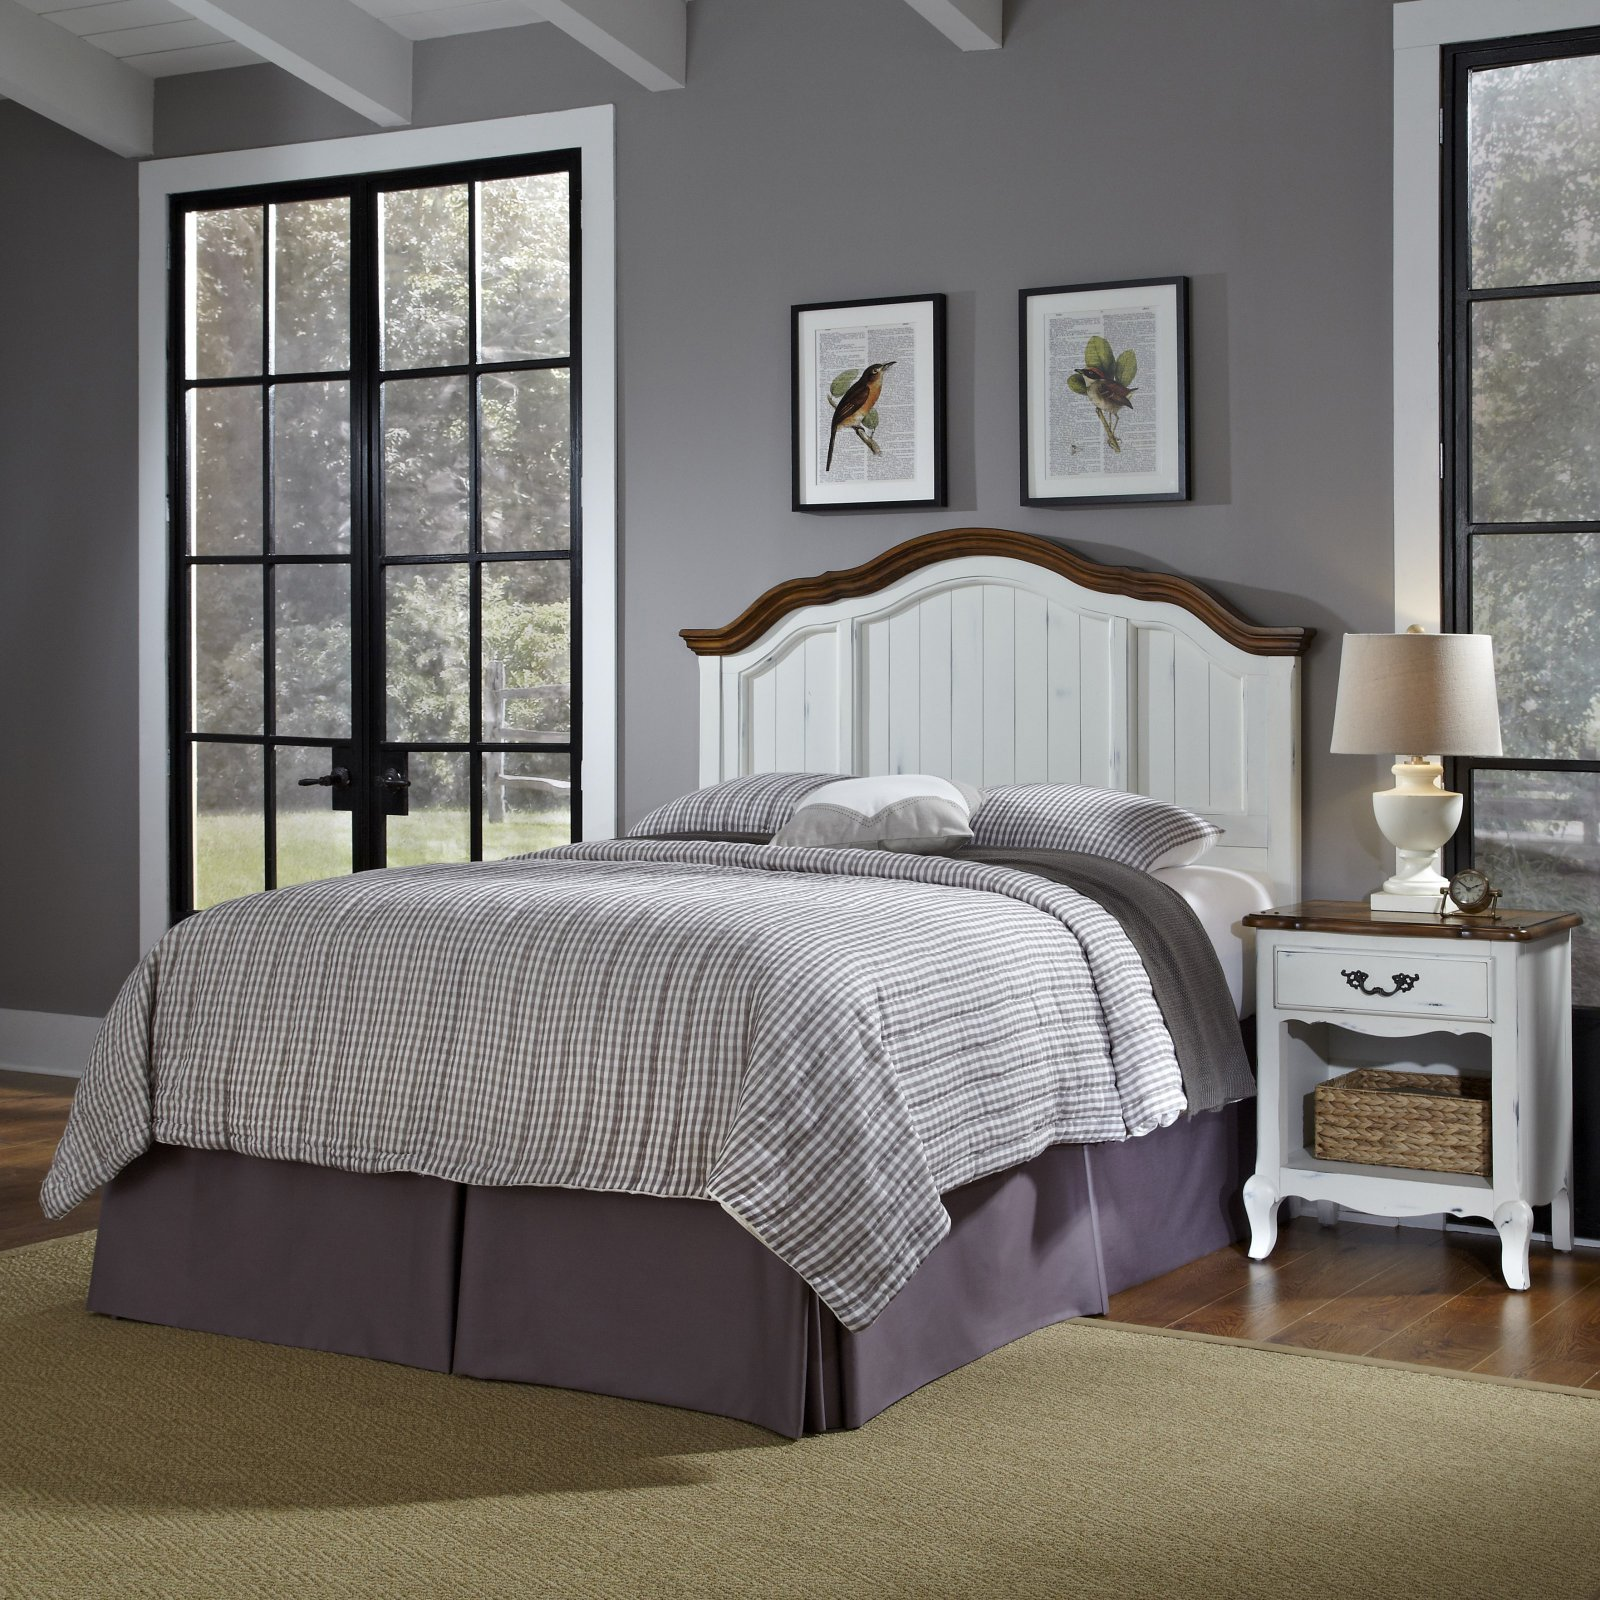 Home Styles French Countryside Bedroom Furniture Collection ...